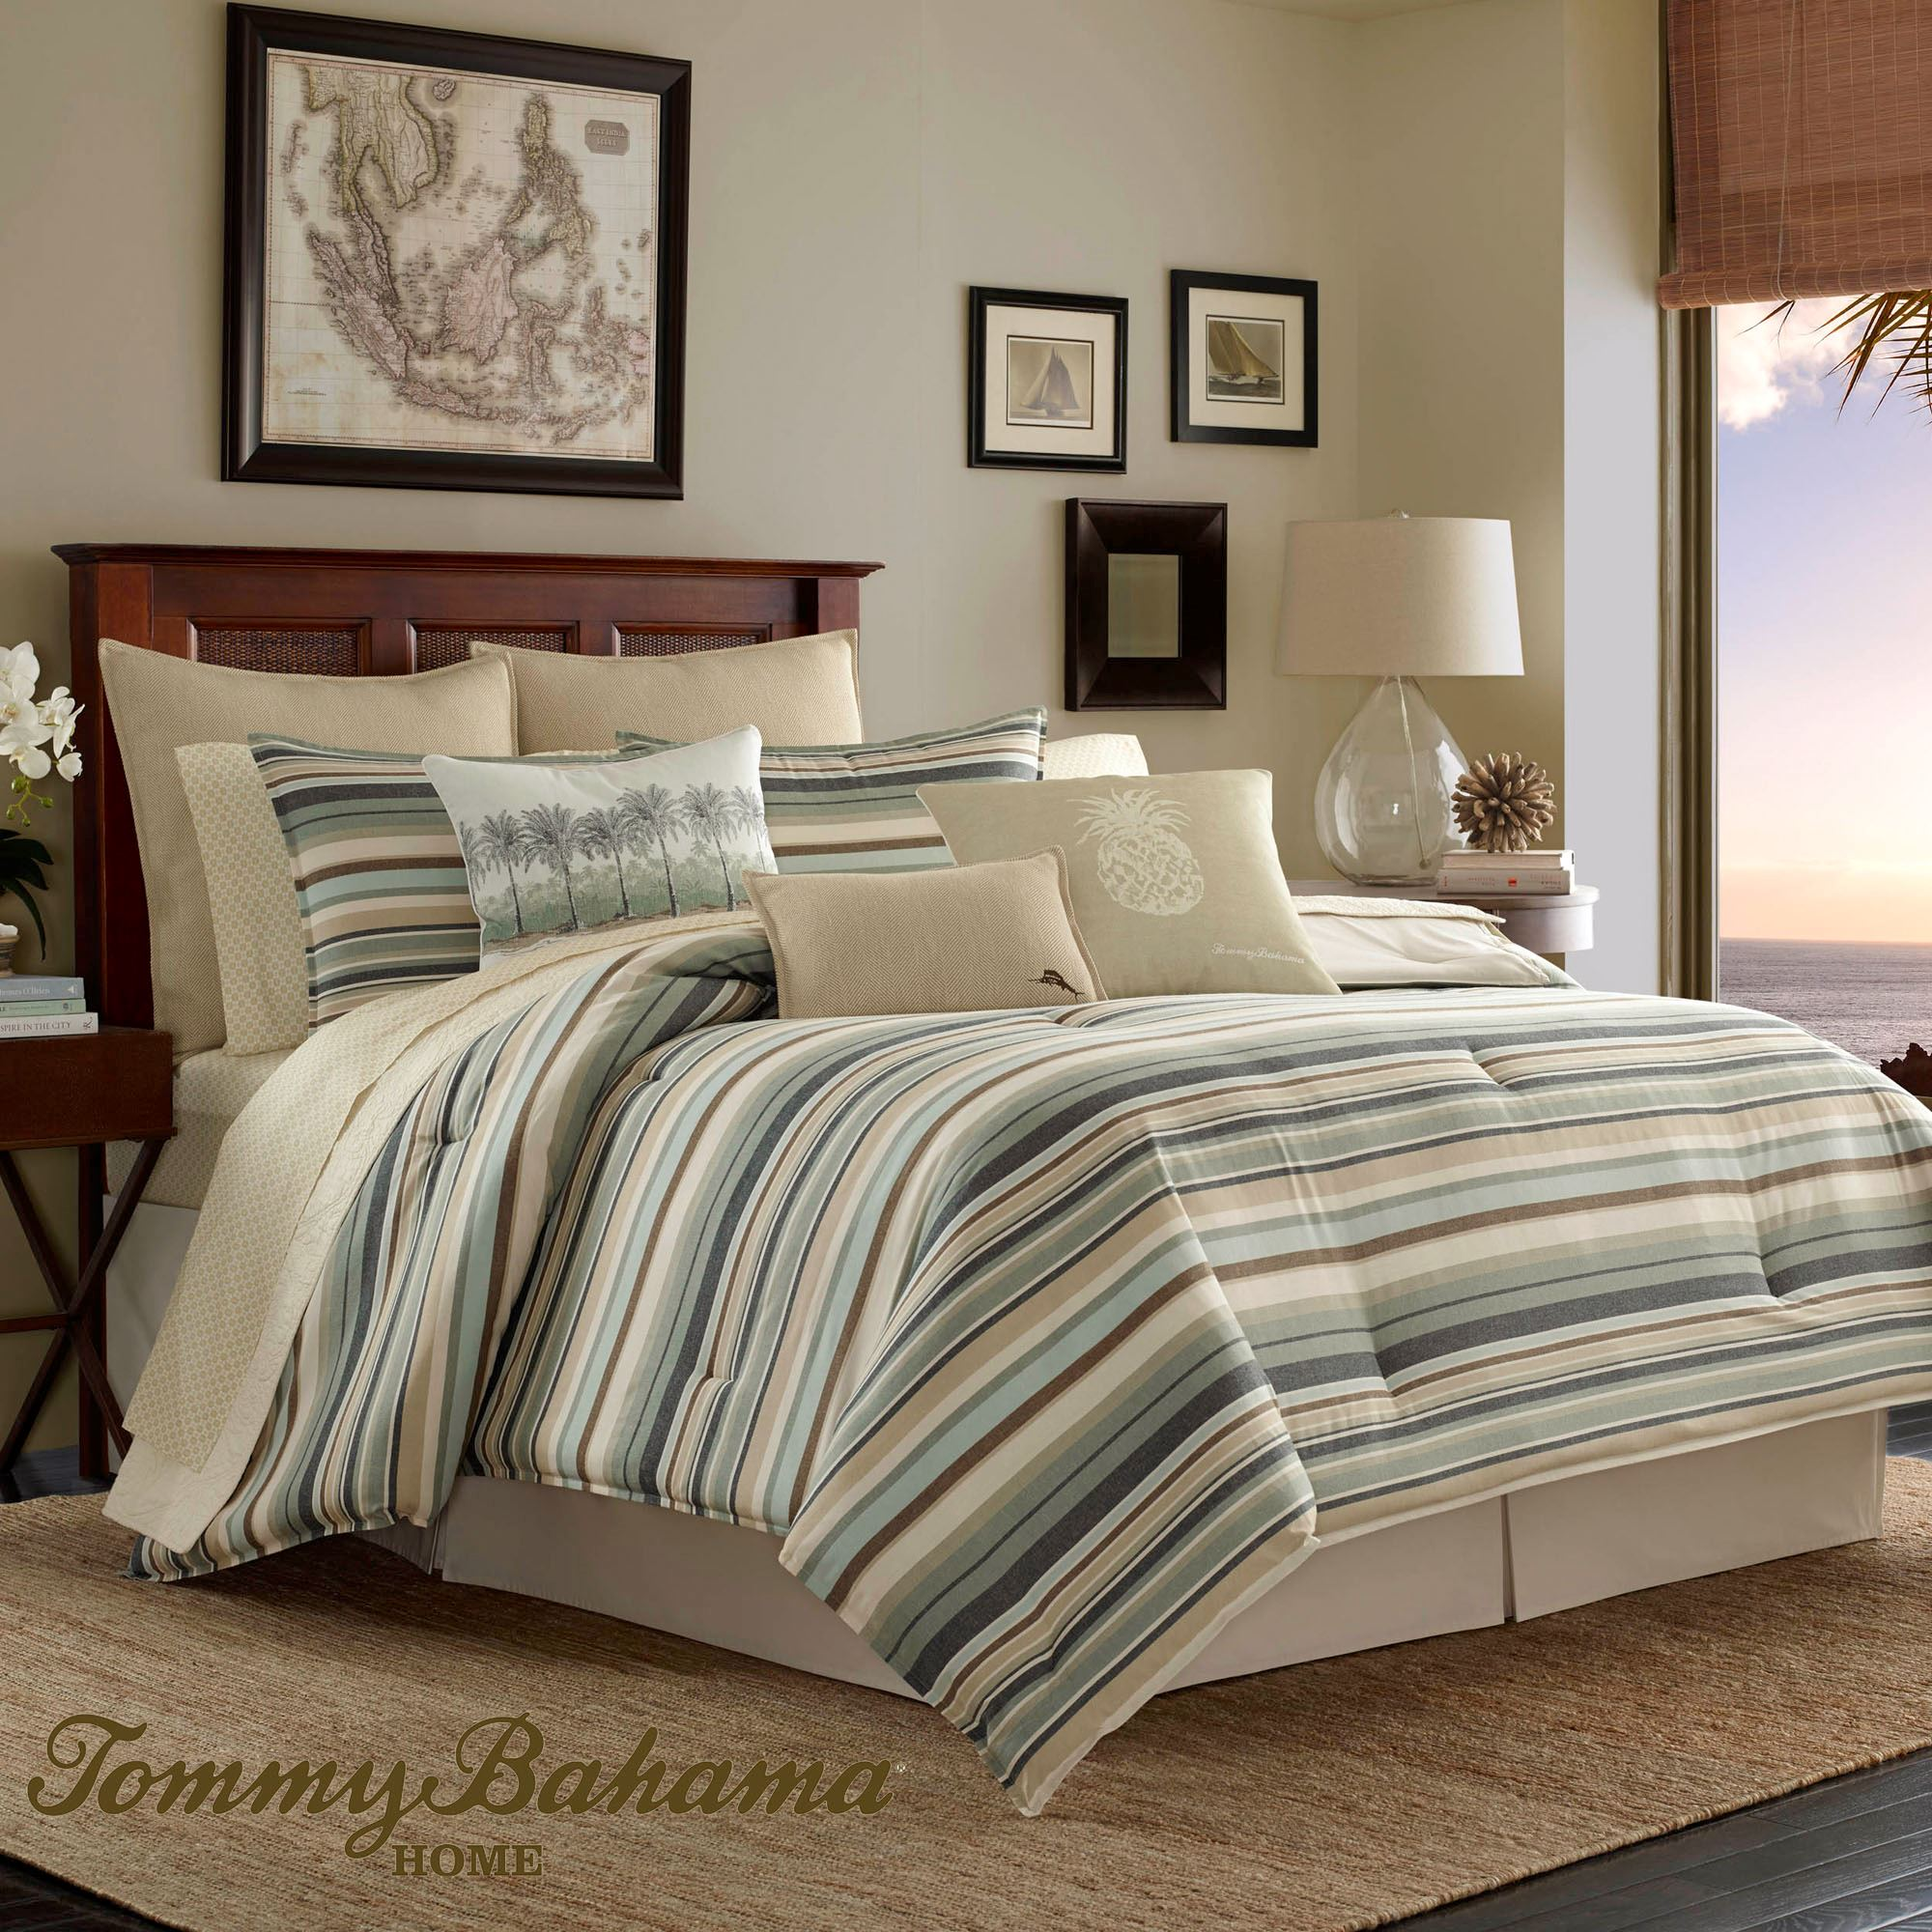 with duvet breezer the king pin we seaglass evoked create this comforter scala set love la tommy bedroom beautiful tropical sea paradise by bahama re in a your breezes